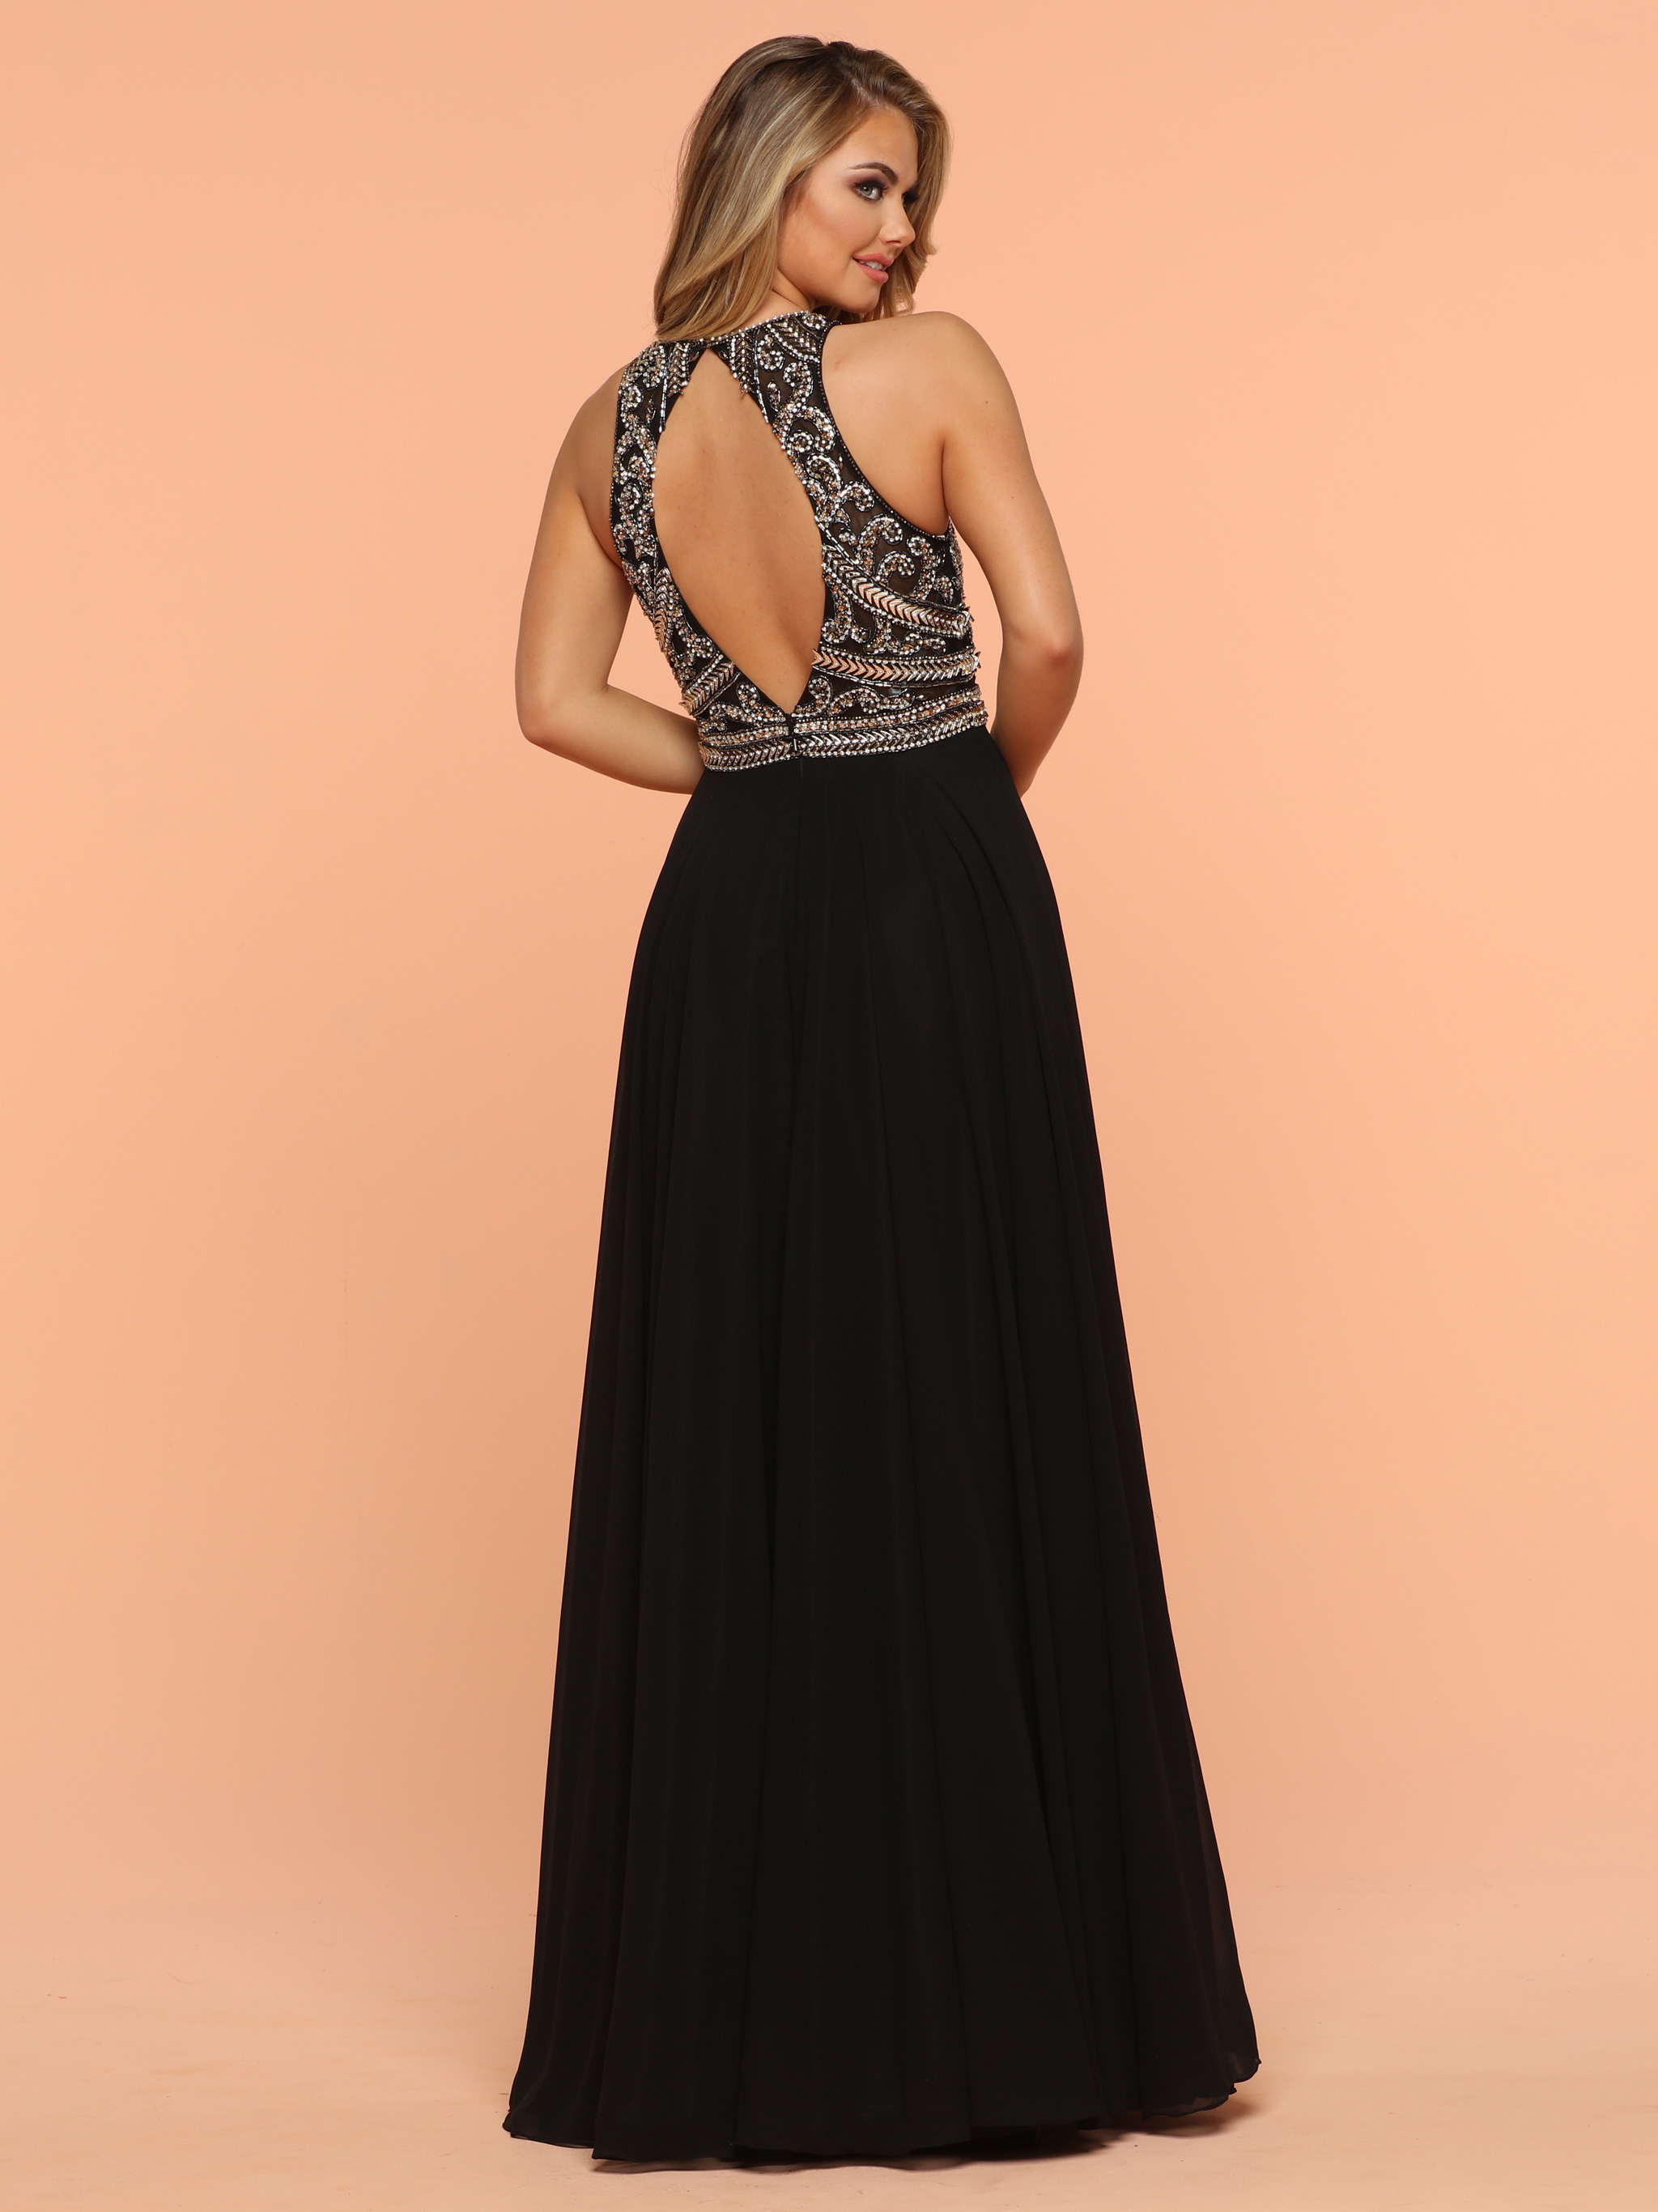 Image showing back view of style #71875